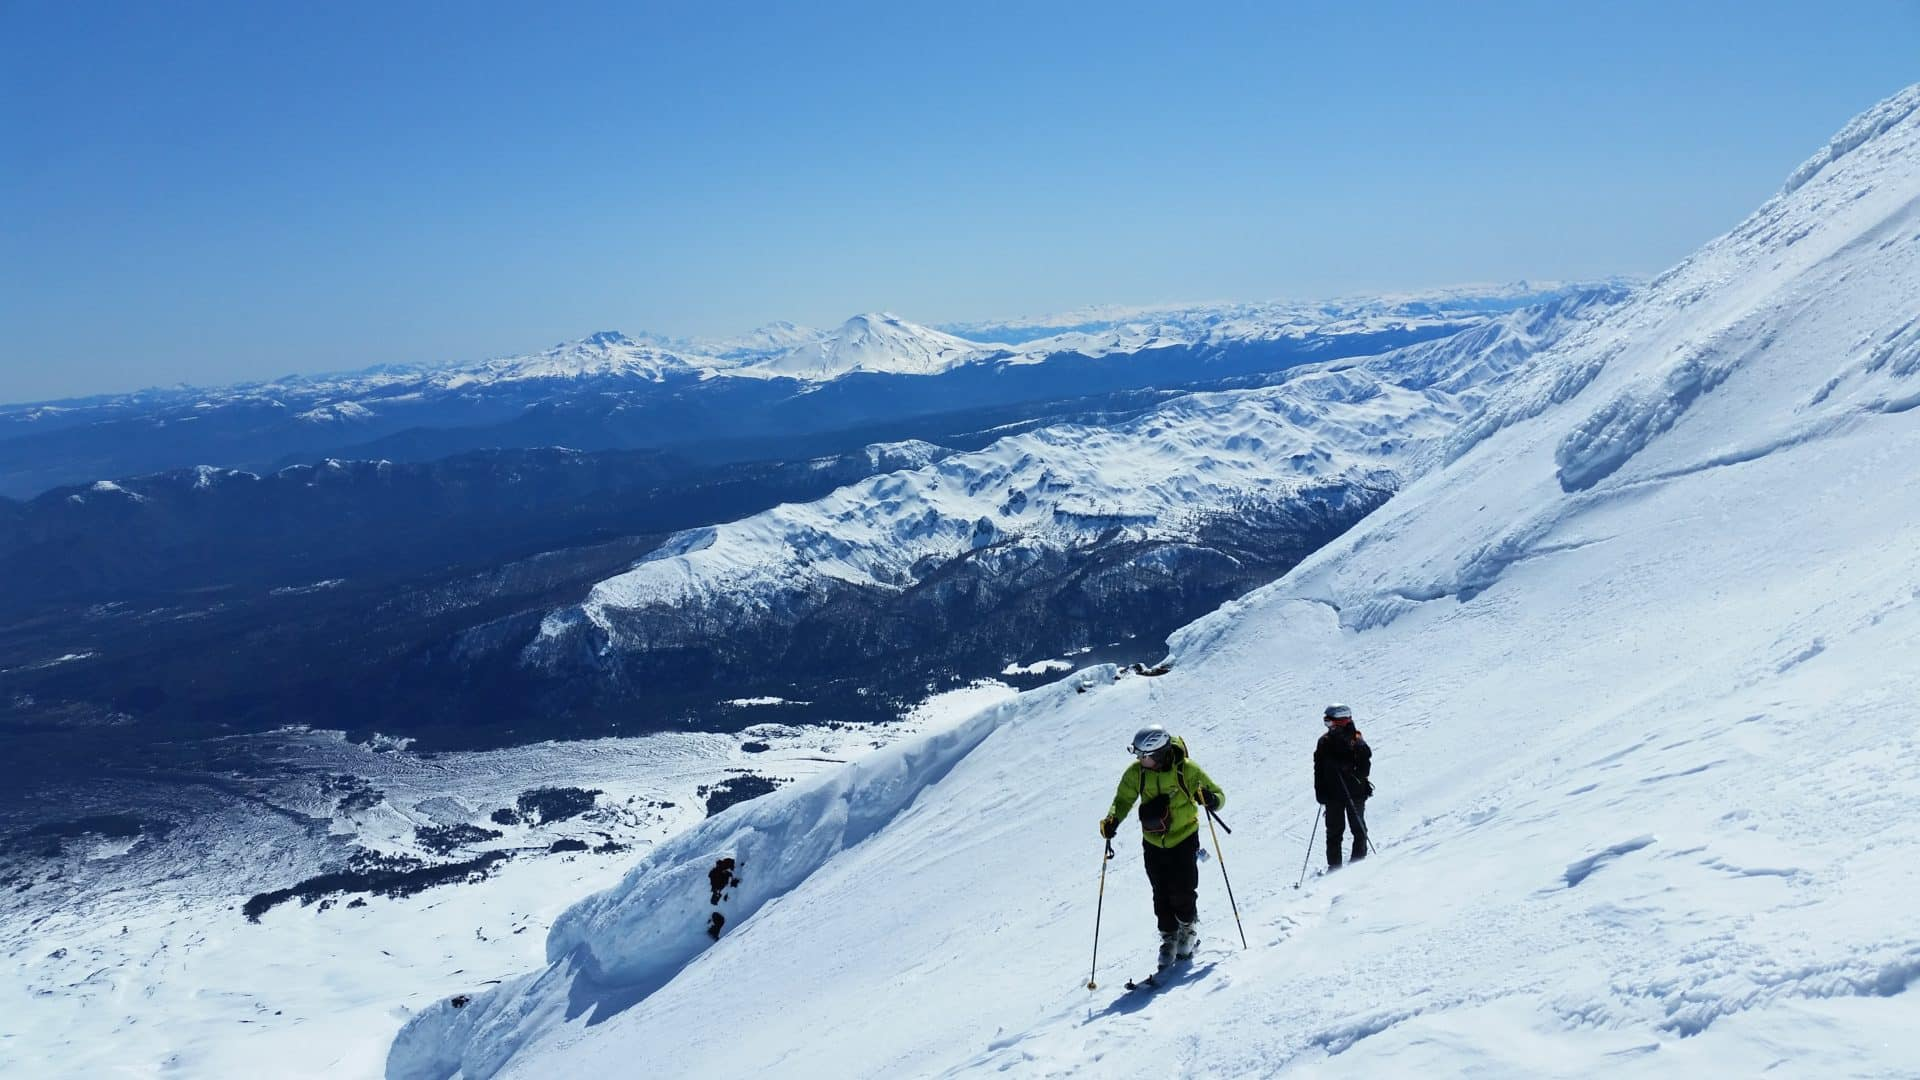 Ski touring in the volcanoes in Chile